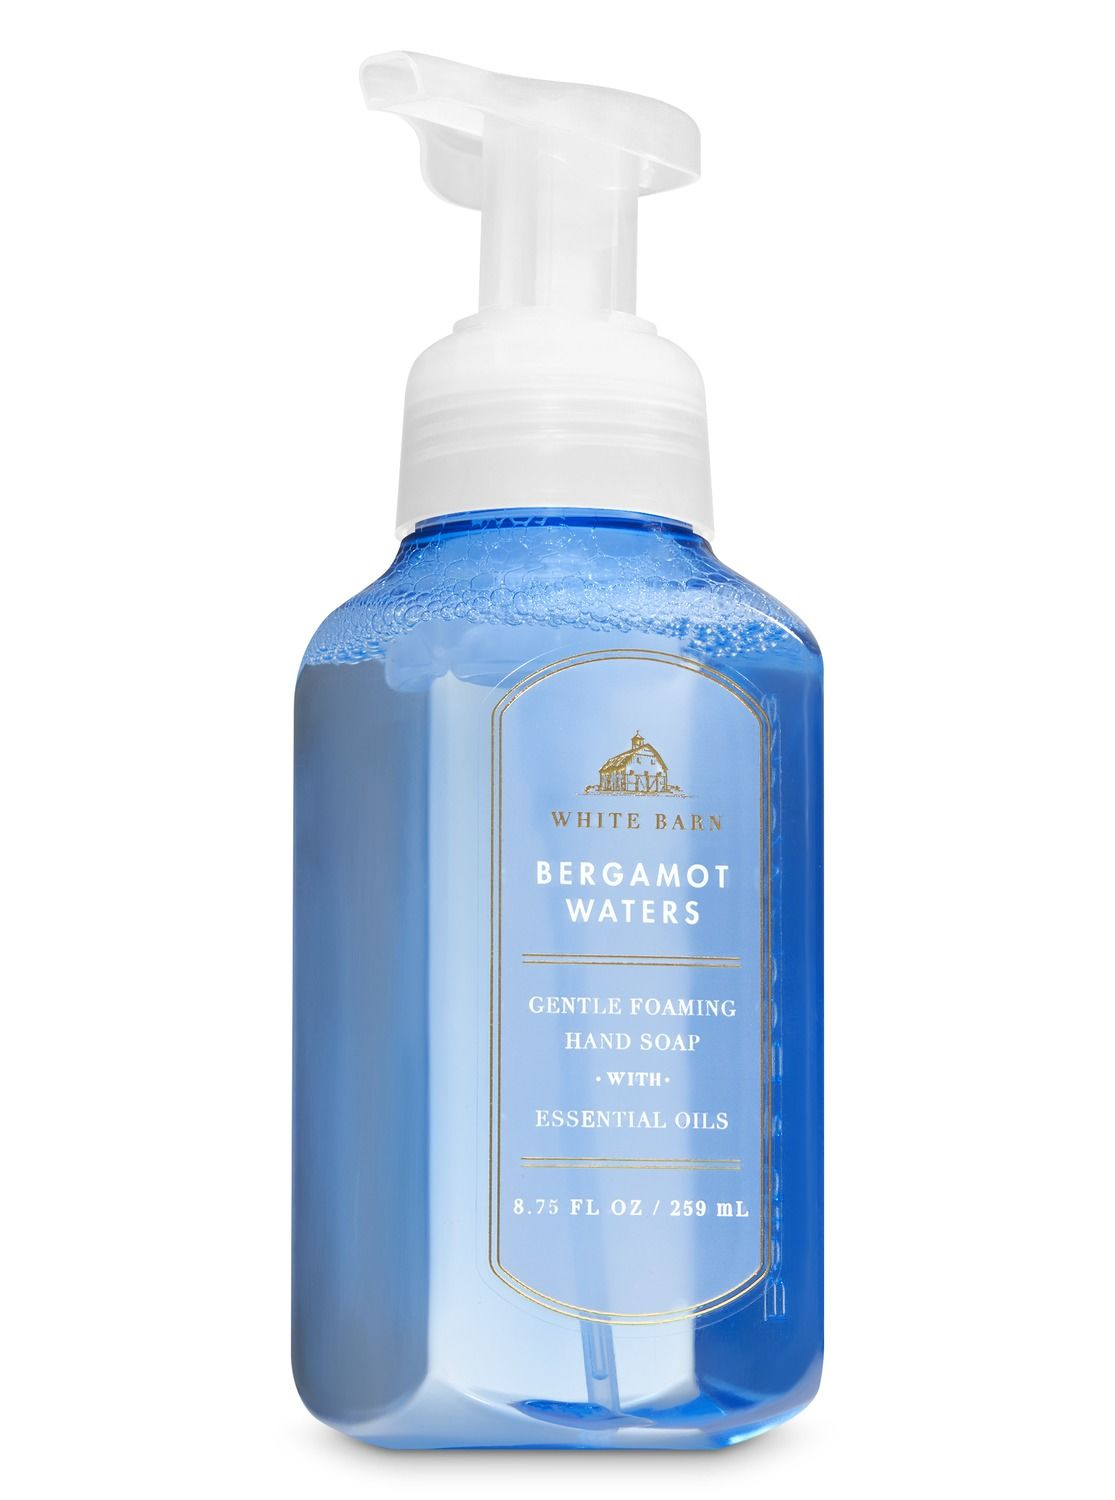 White Barn Bergamot Waters Gentle Foaming Hand Soap By Bath